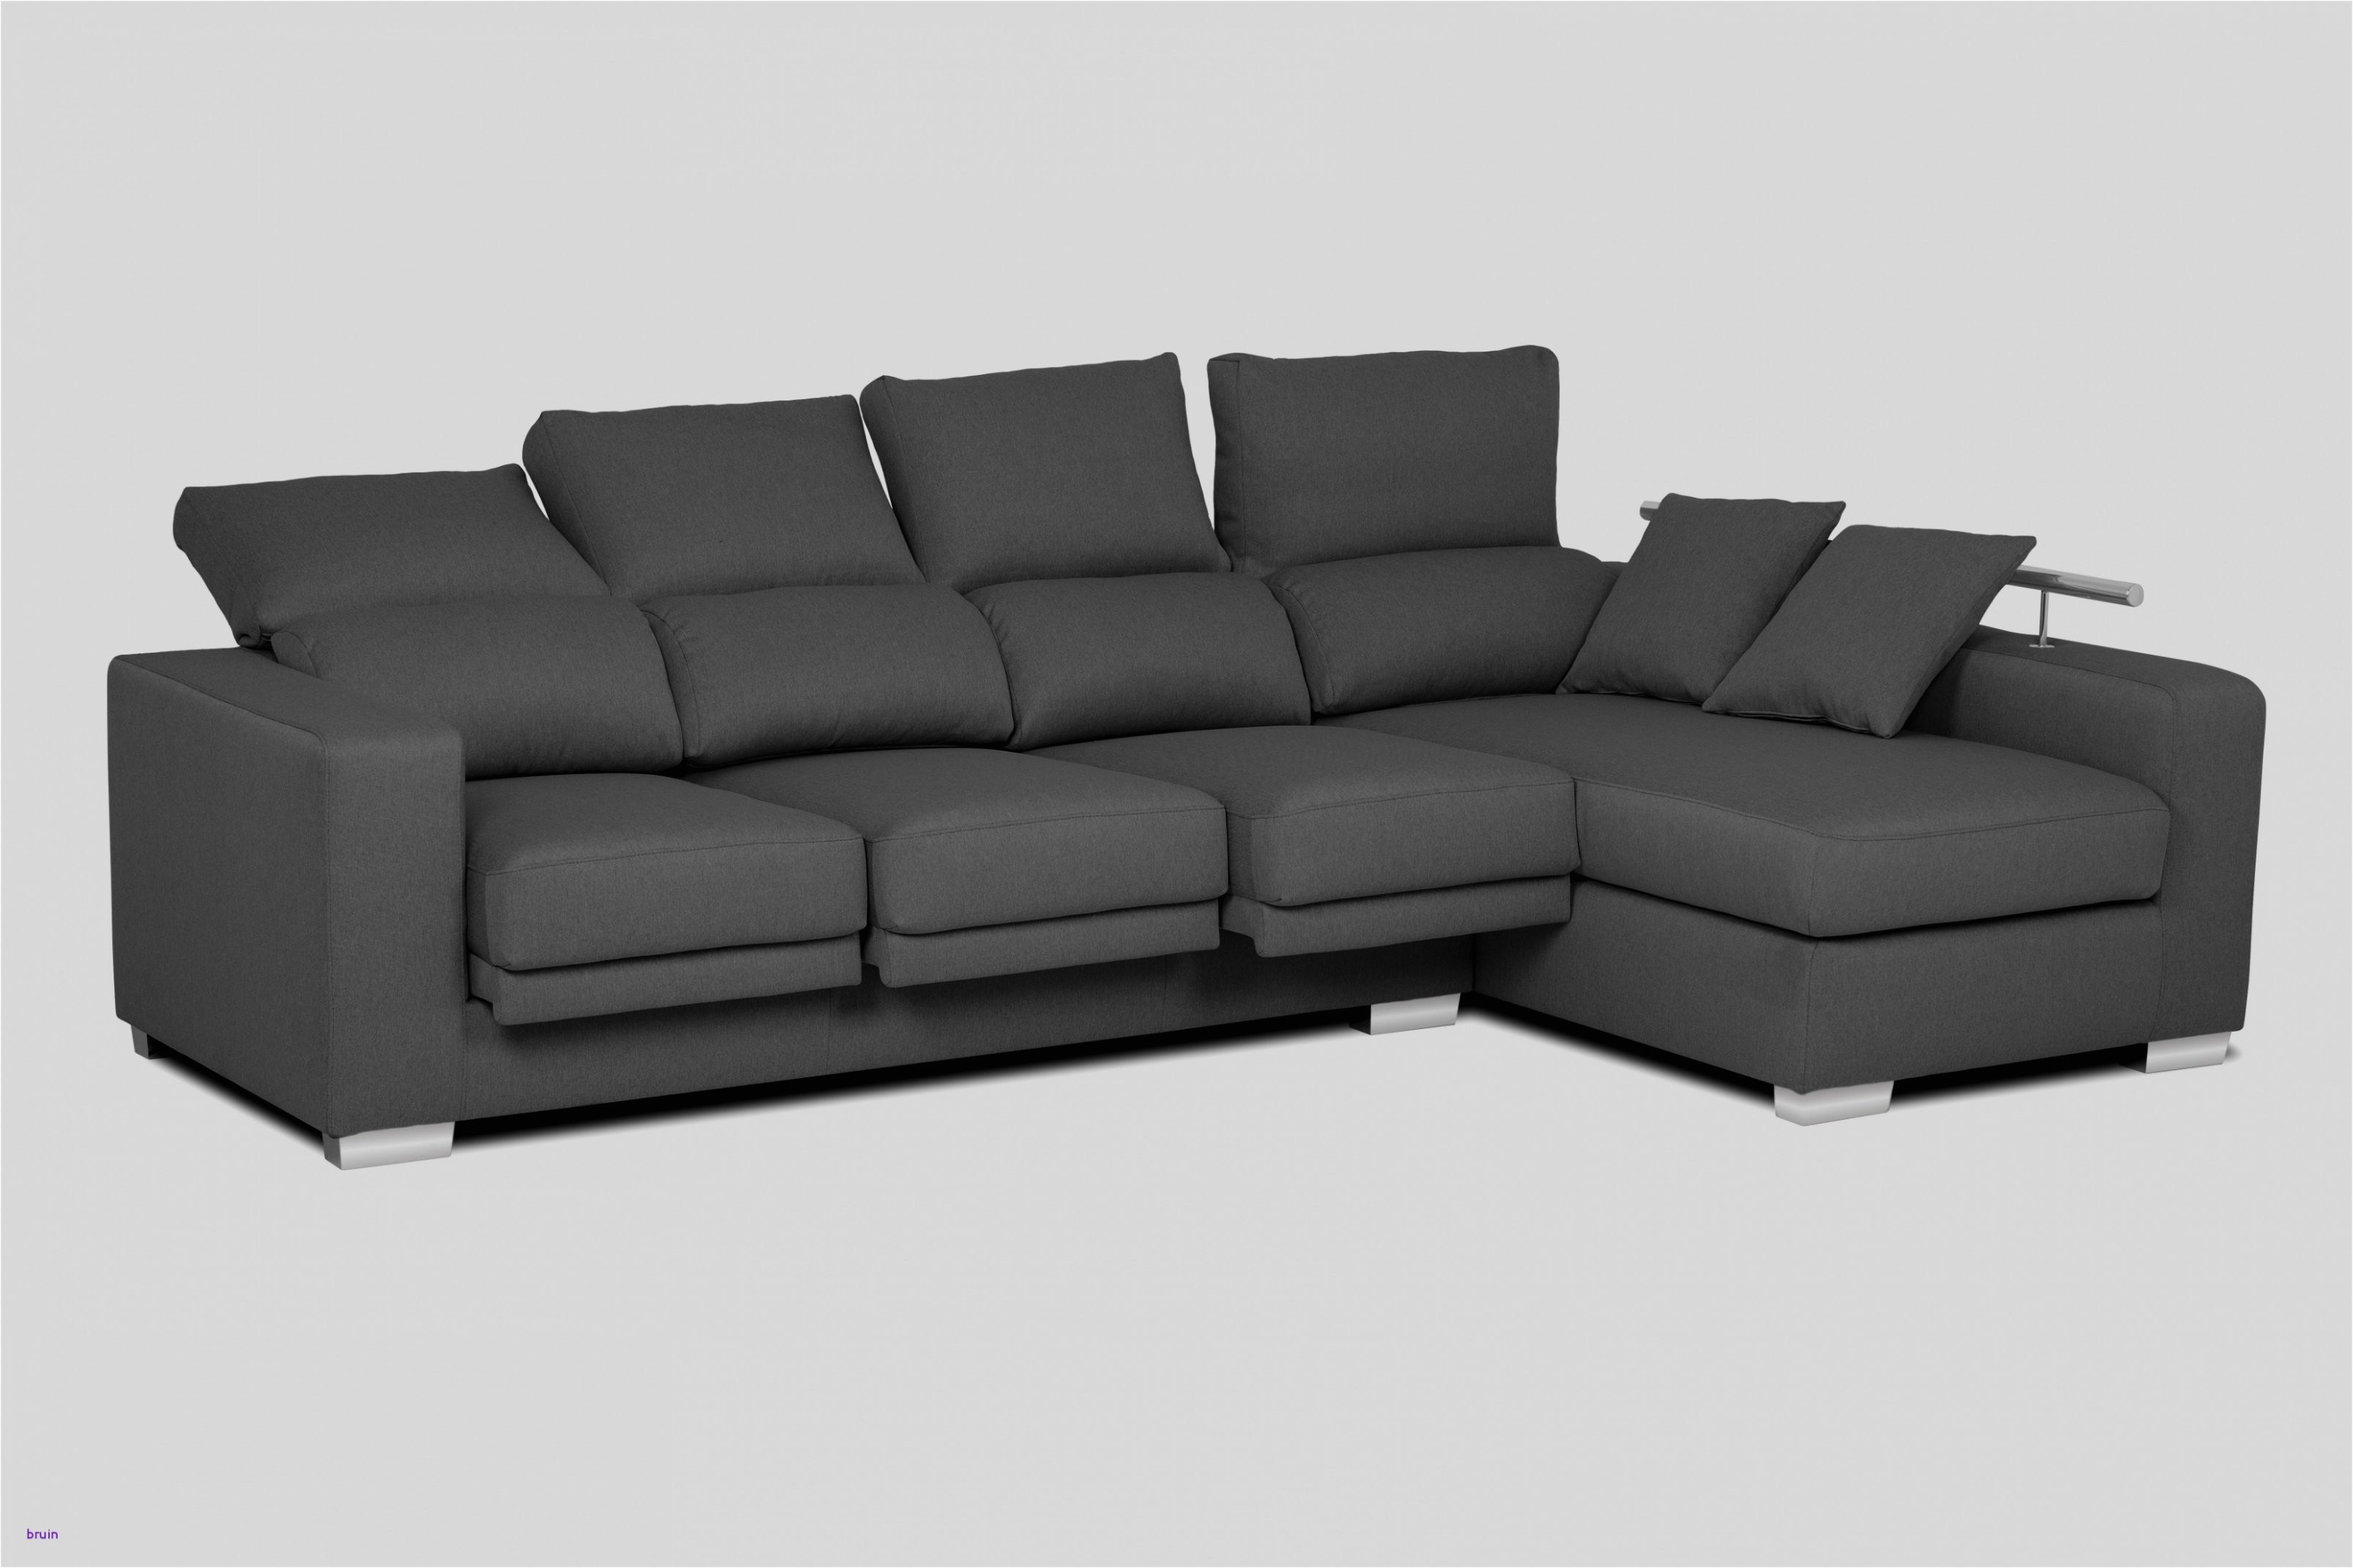 25 agradable sofas baratos mallorca